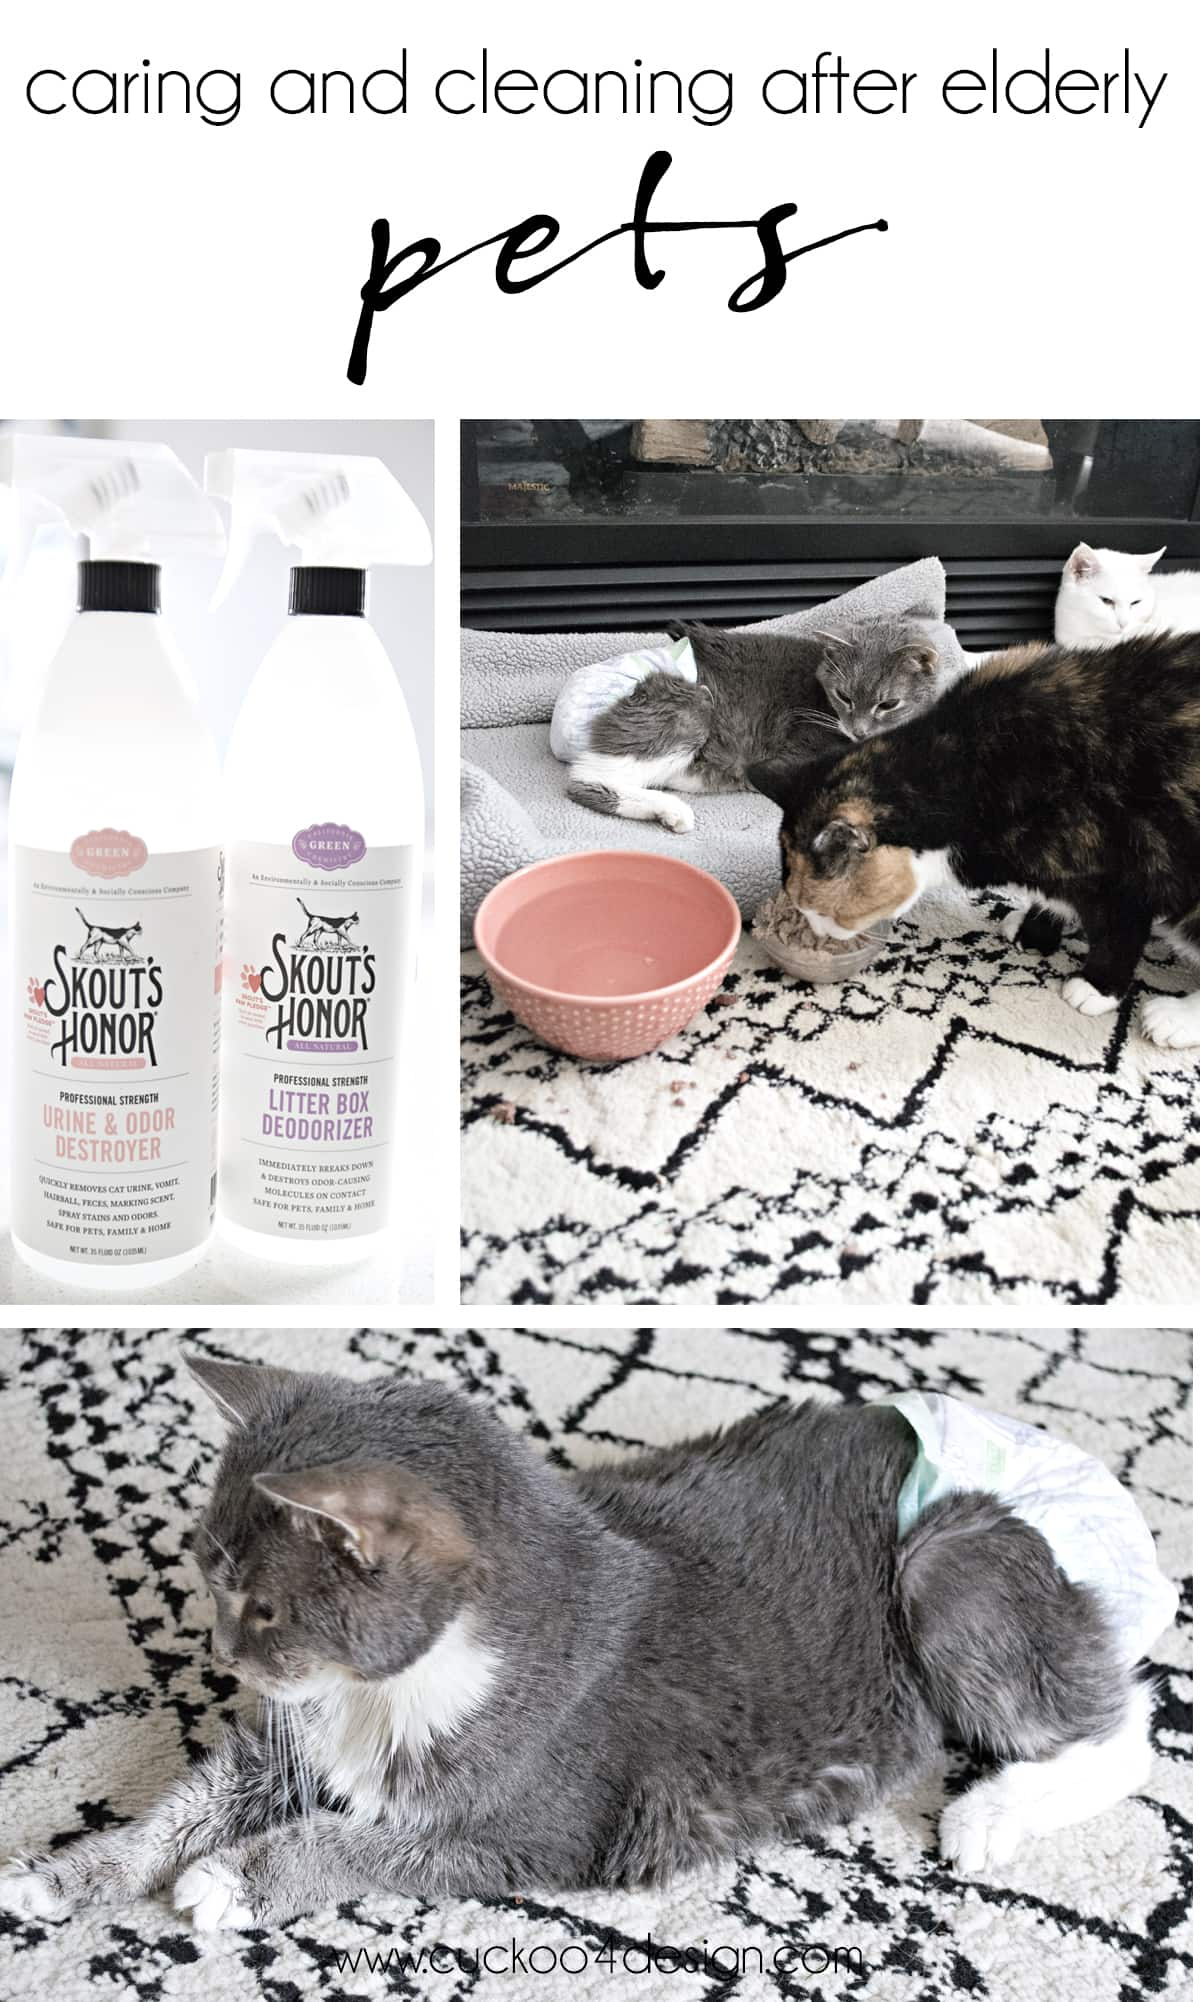 tips for caring and cleaning after elderly cats